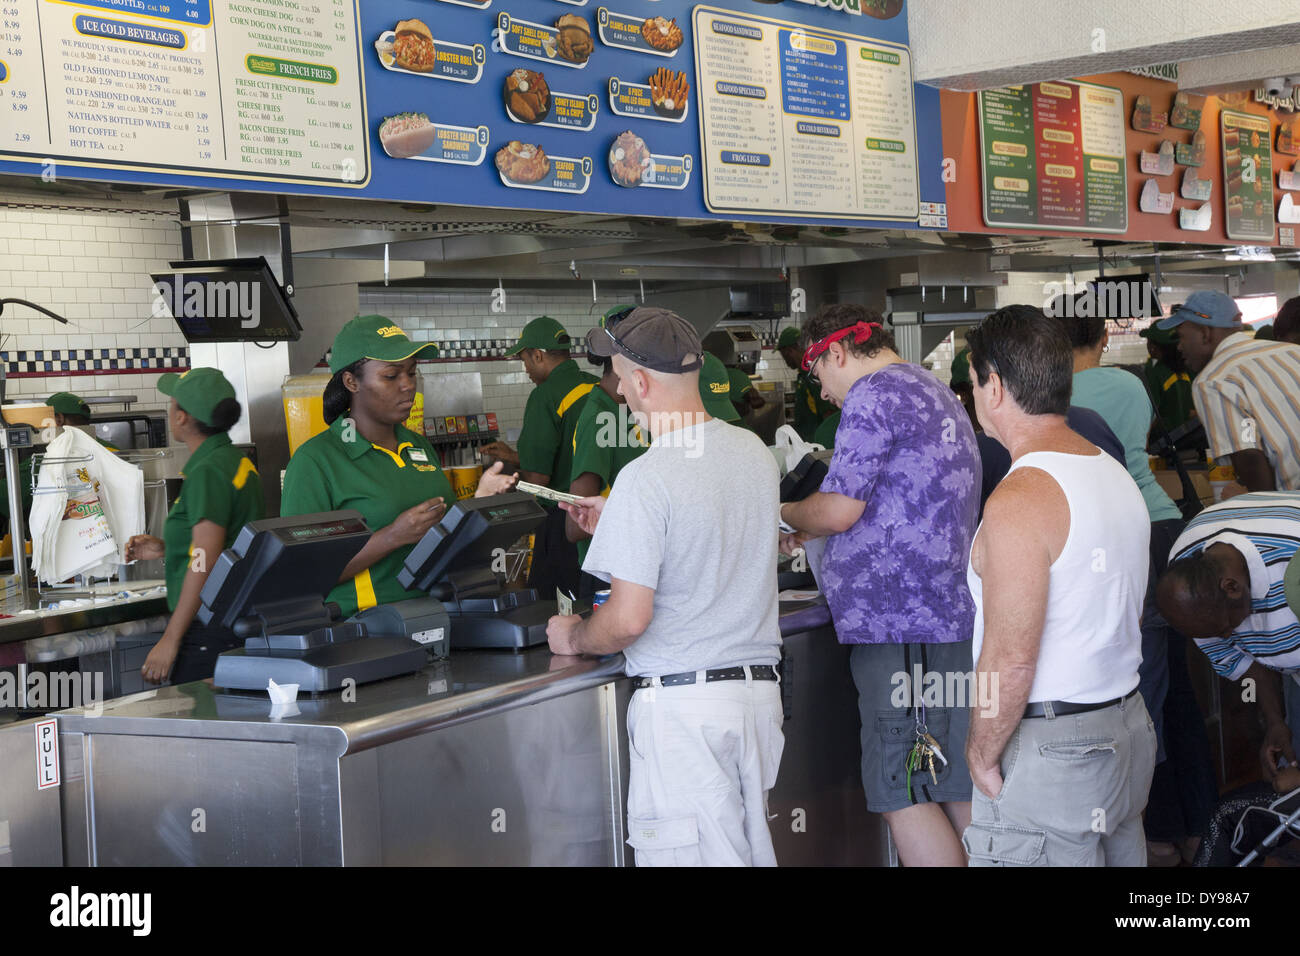 People being served inside the original Nathan's, famous for its hot dogs at Coney Island, Brooklyn, NY. - Stock Image